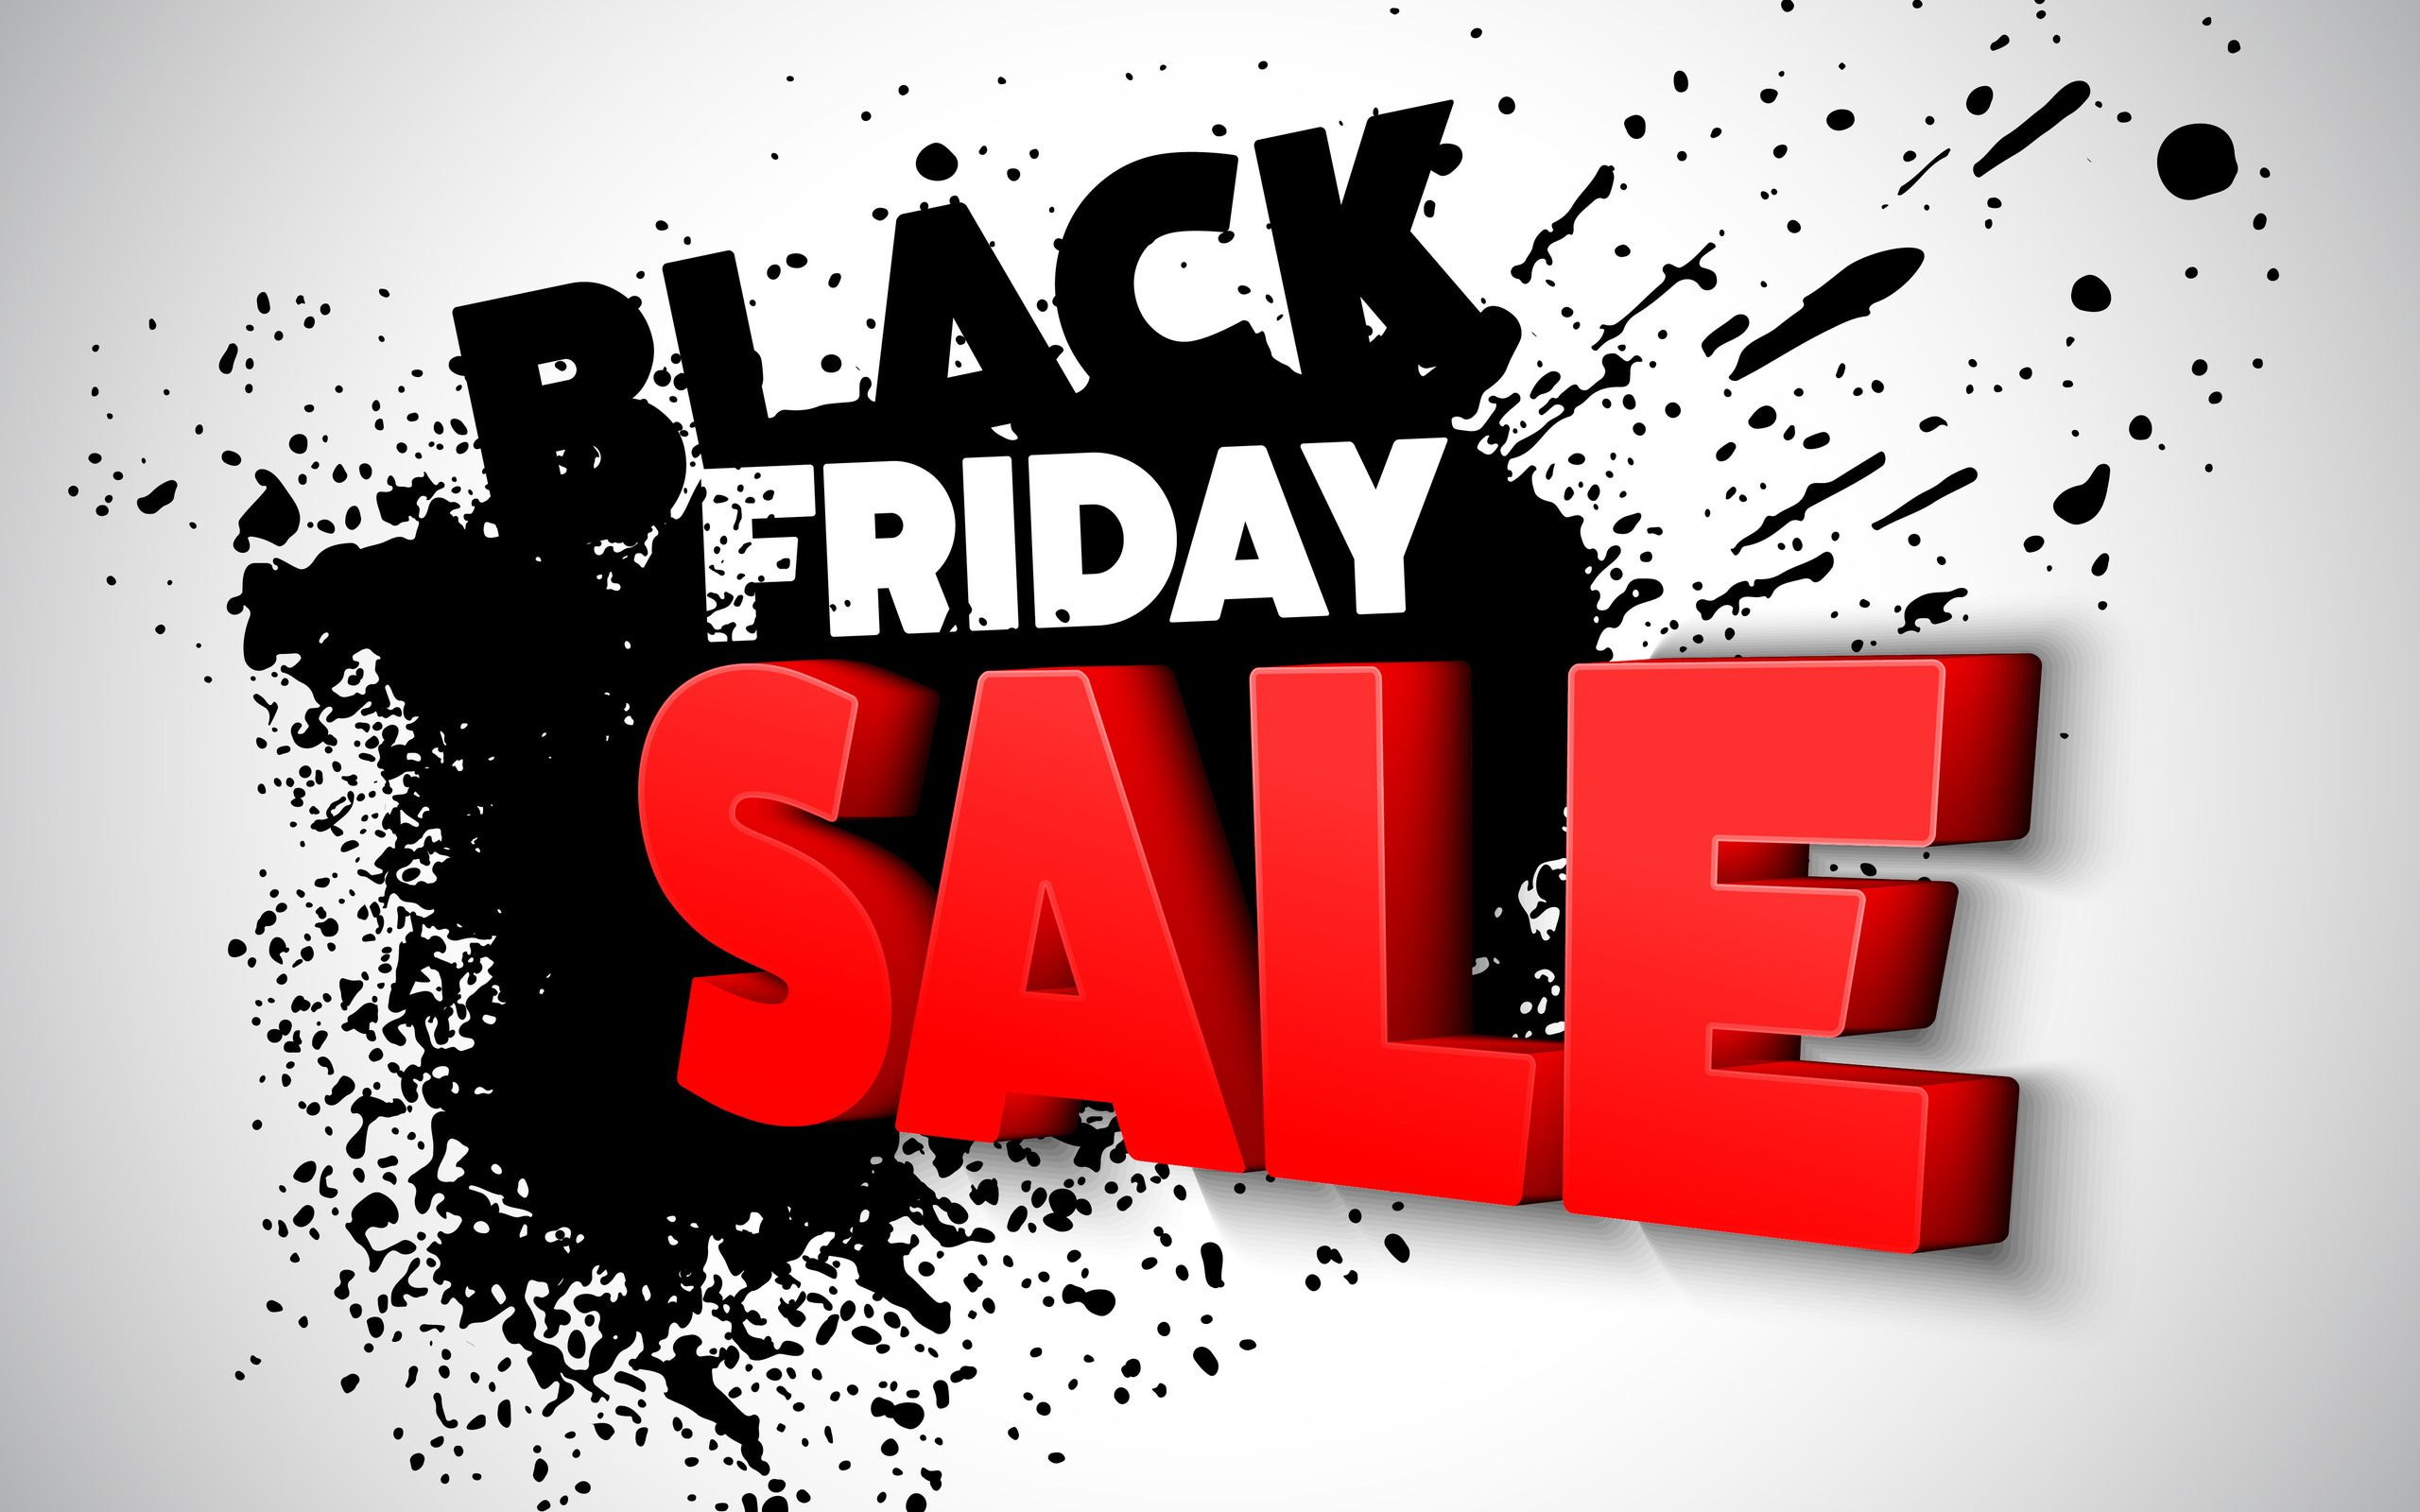 Black Friday Specials ads South Africa 2019